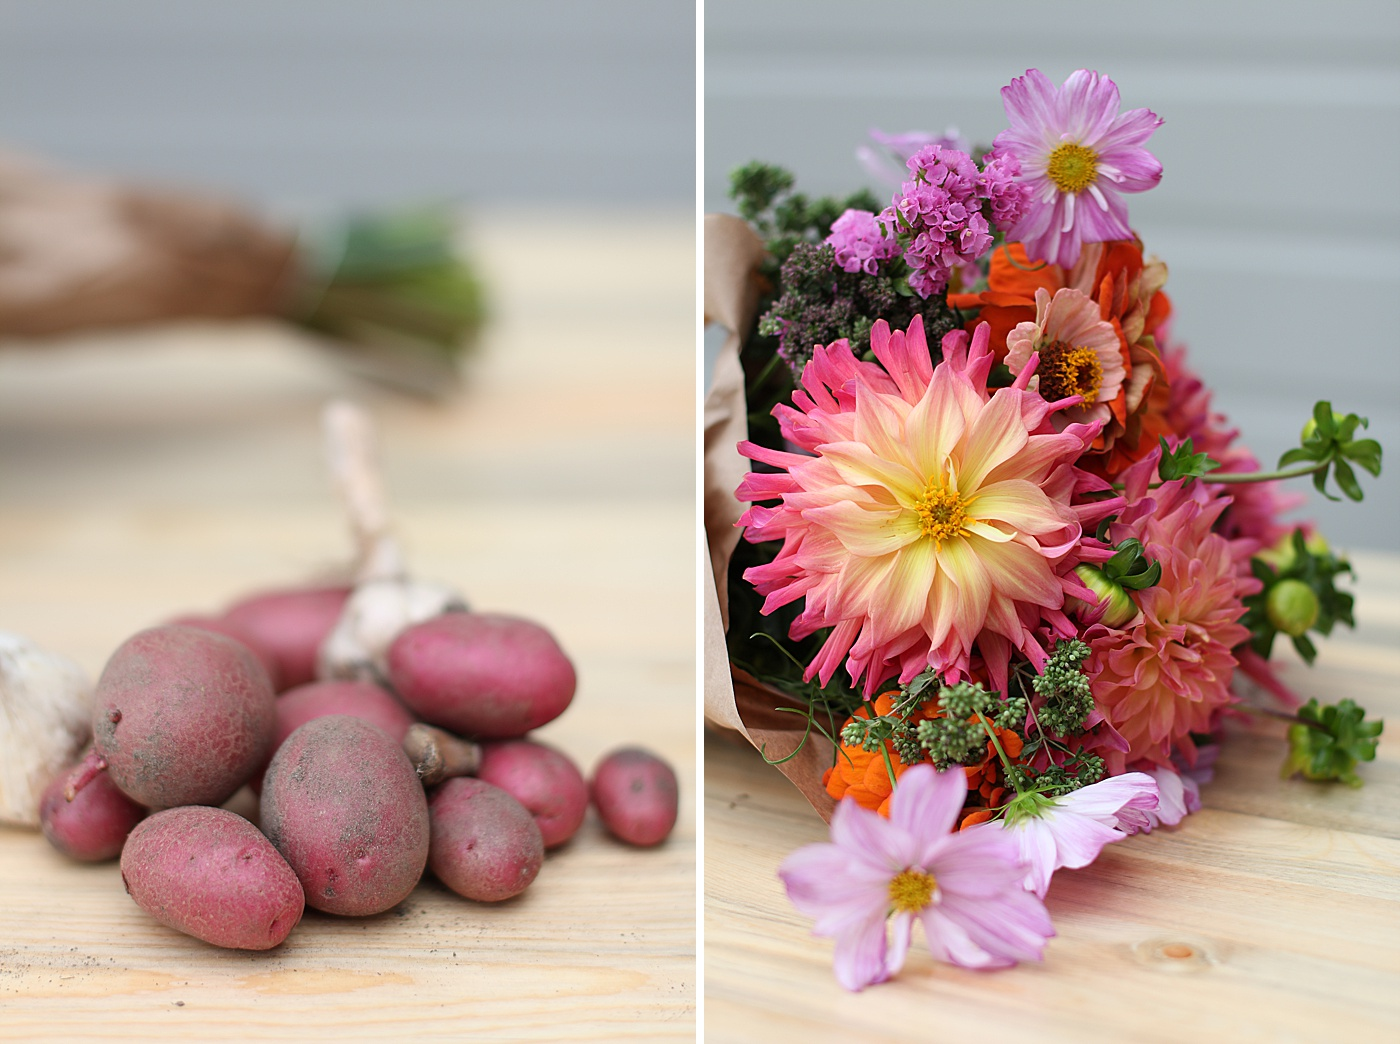 colorful flowers and potatoes